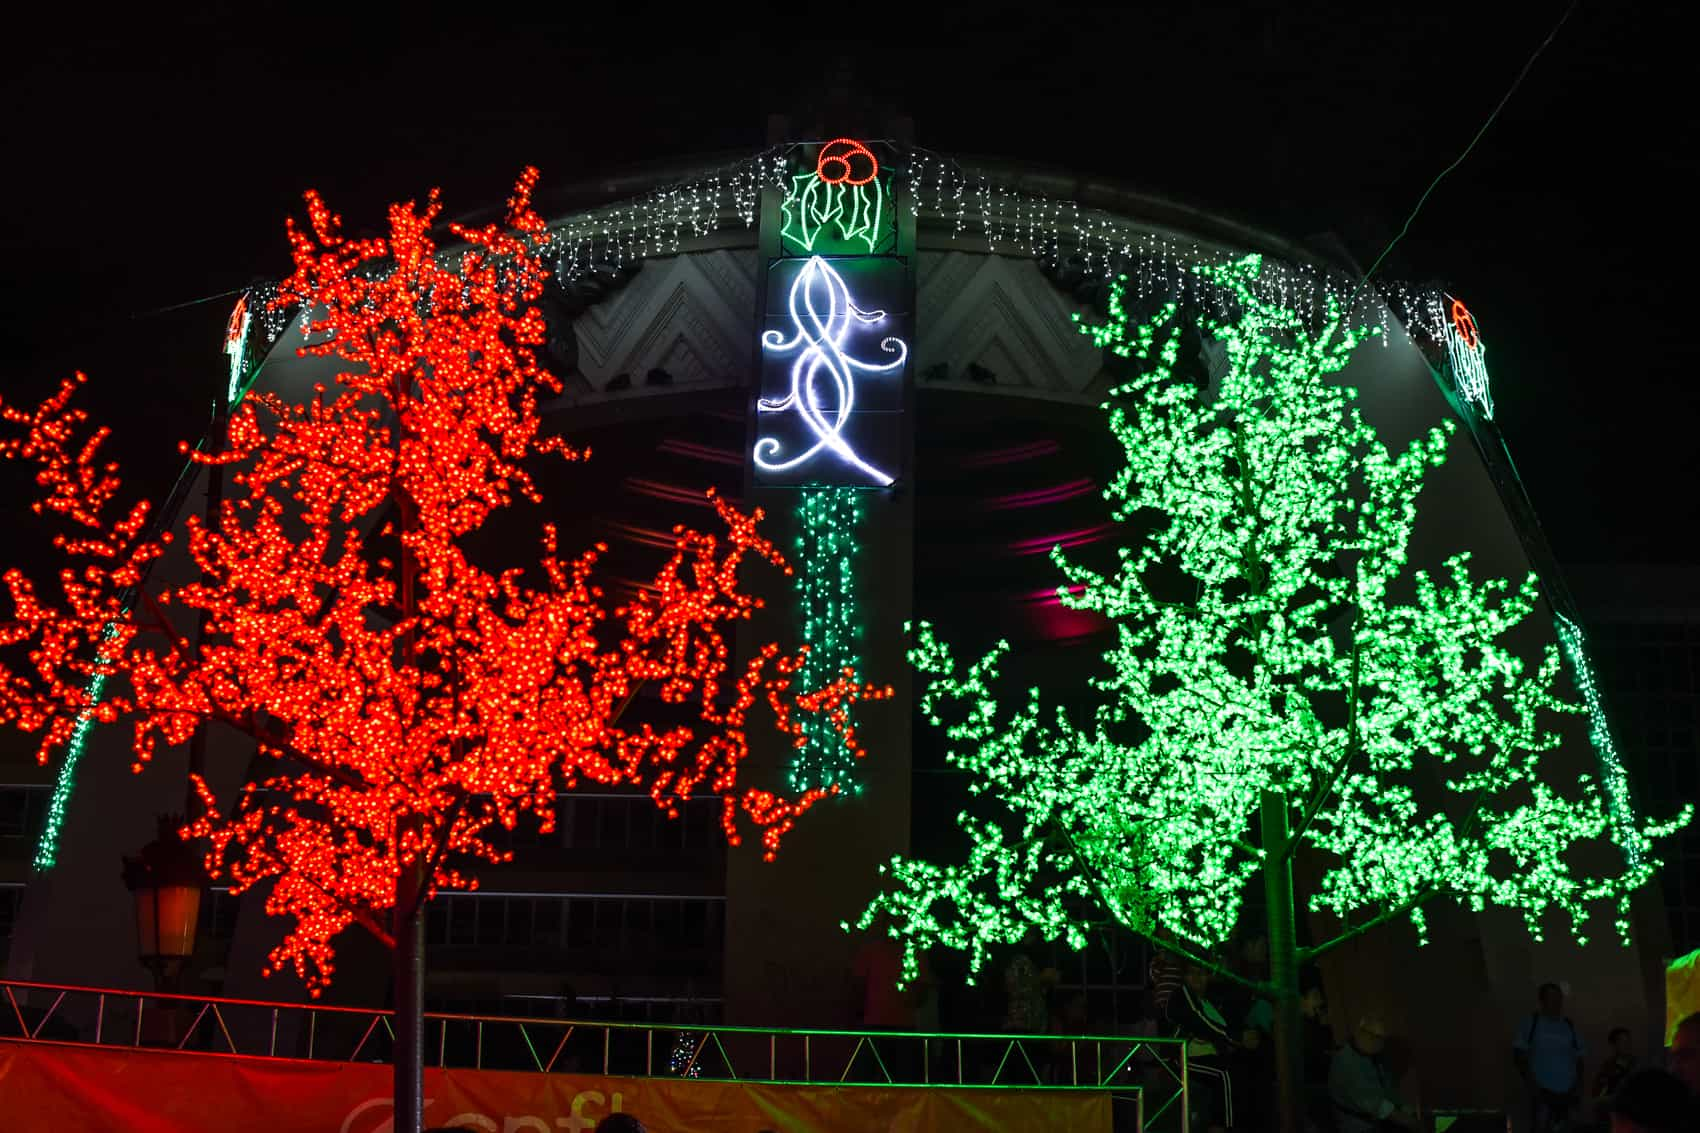 The Kiosk and some streets in San José were illuminated December 03.